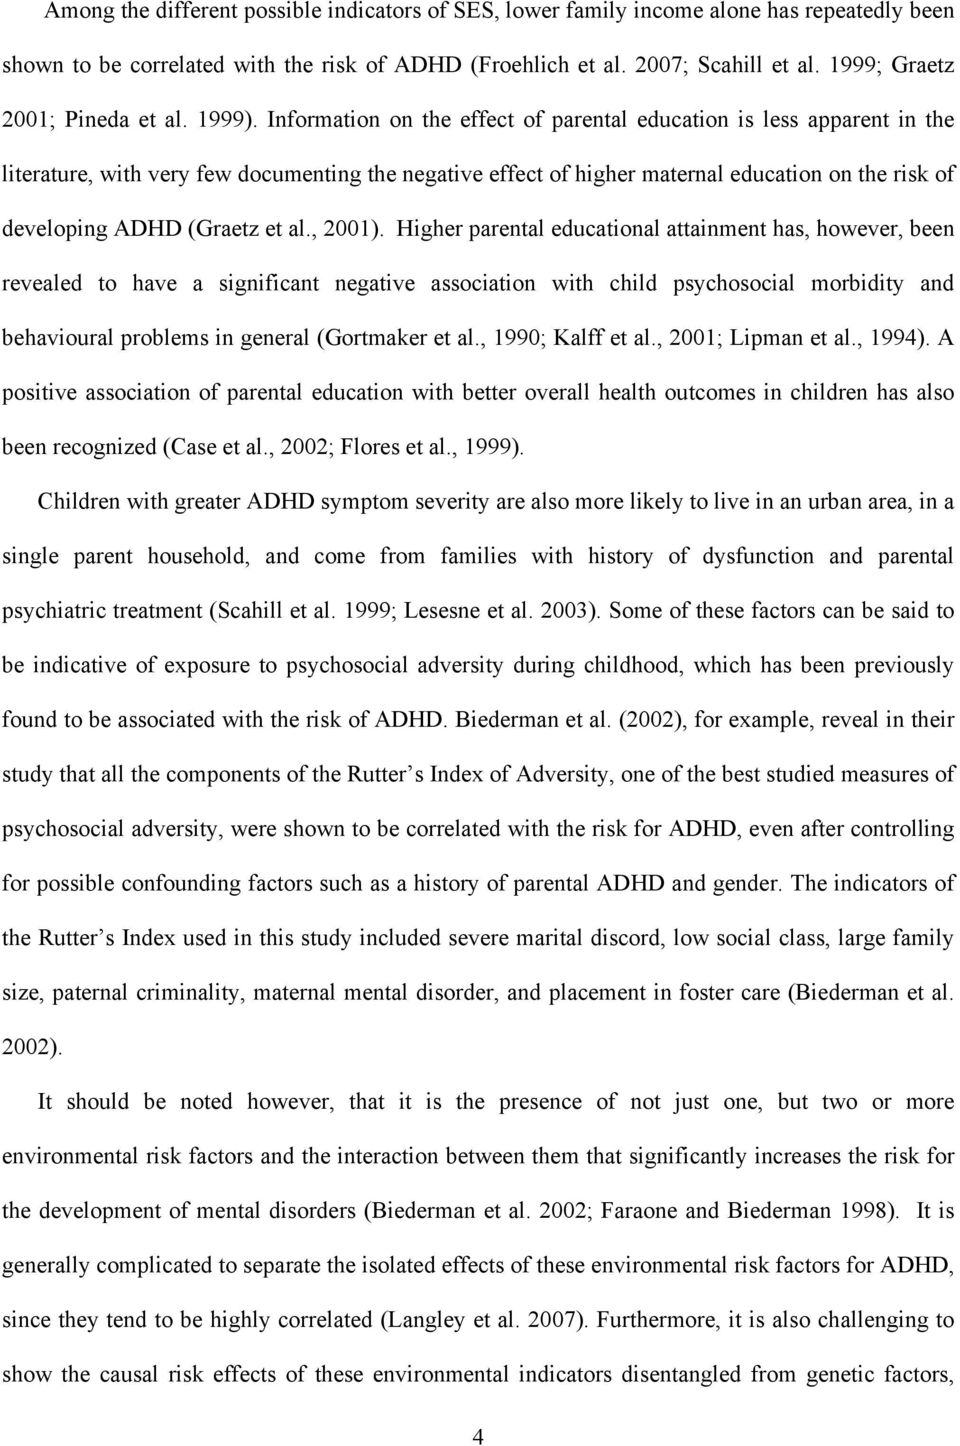 Information on the effect of parental education is less apparent in the literature, with very few documenting the negative effect of higher maternal education on the risk of developing ADHD (Graetz